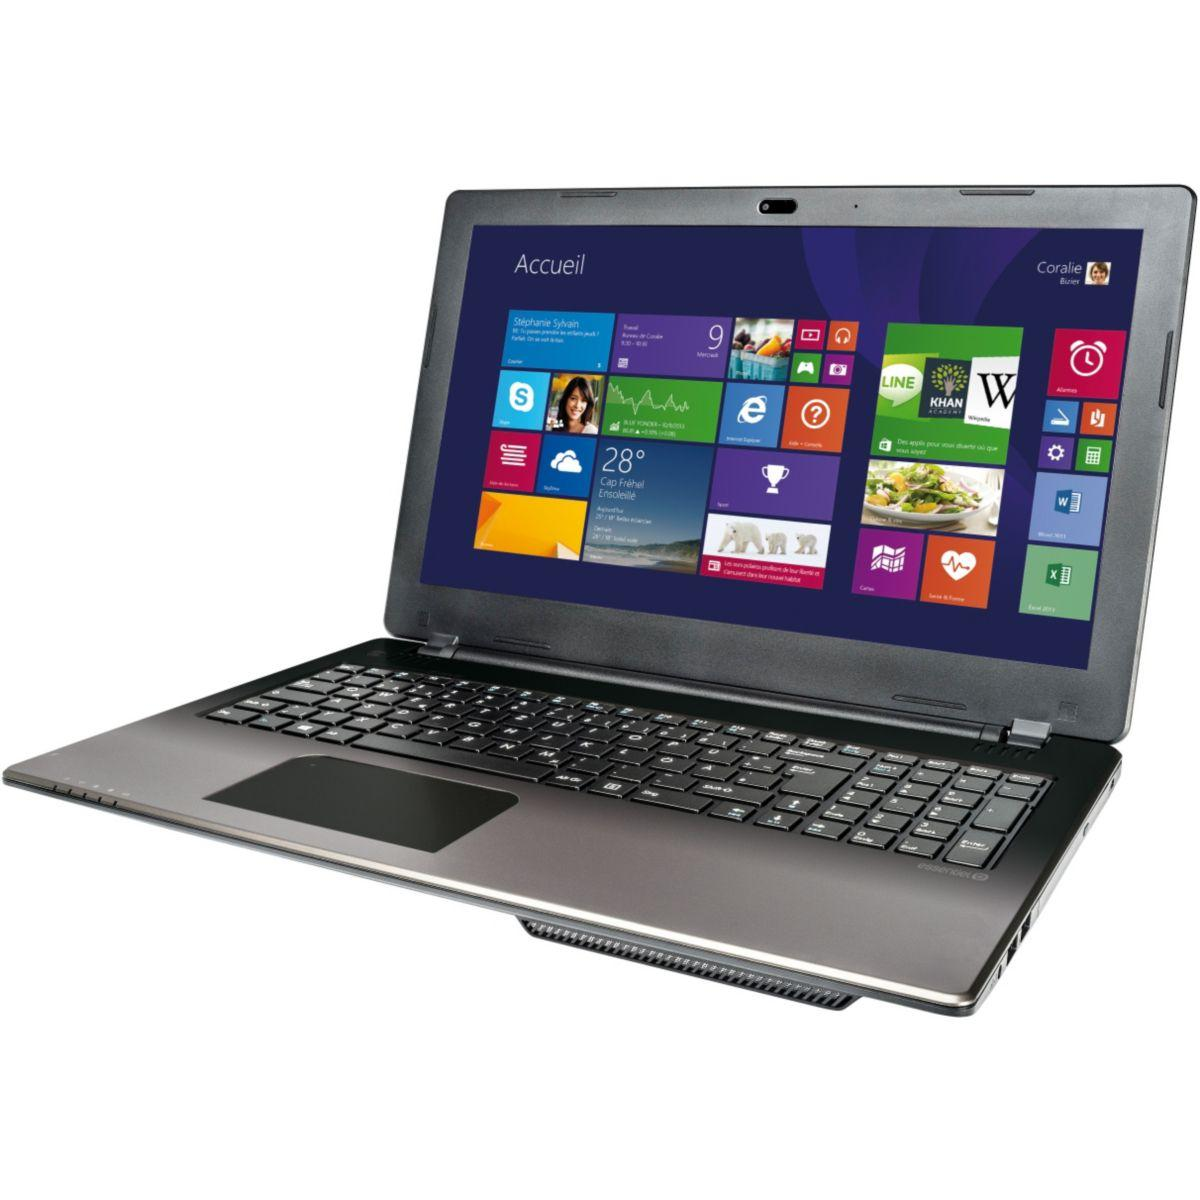 "Essentiel B Smart'MOUV 1506-6 15,6"" Celeron N2930 1,8 GHz  - SSD 8 Go + HDD 1.024 To - RAM 4 Go"